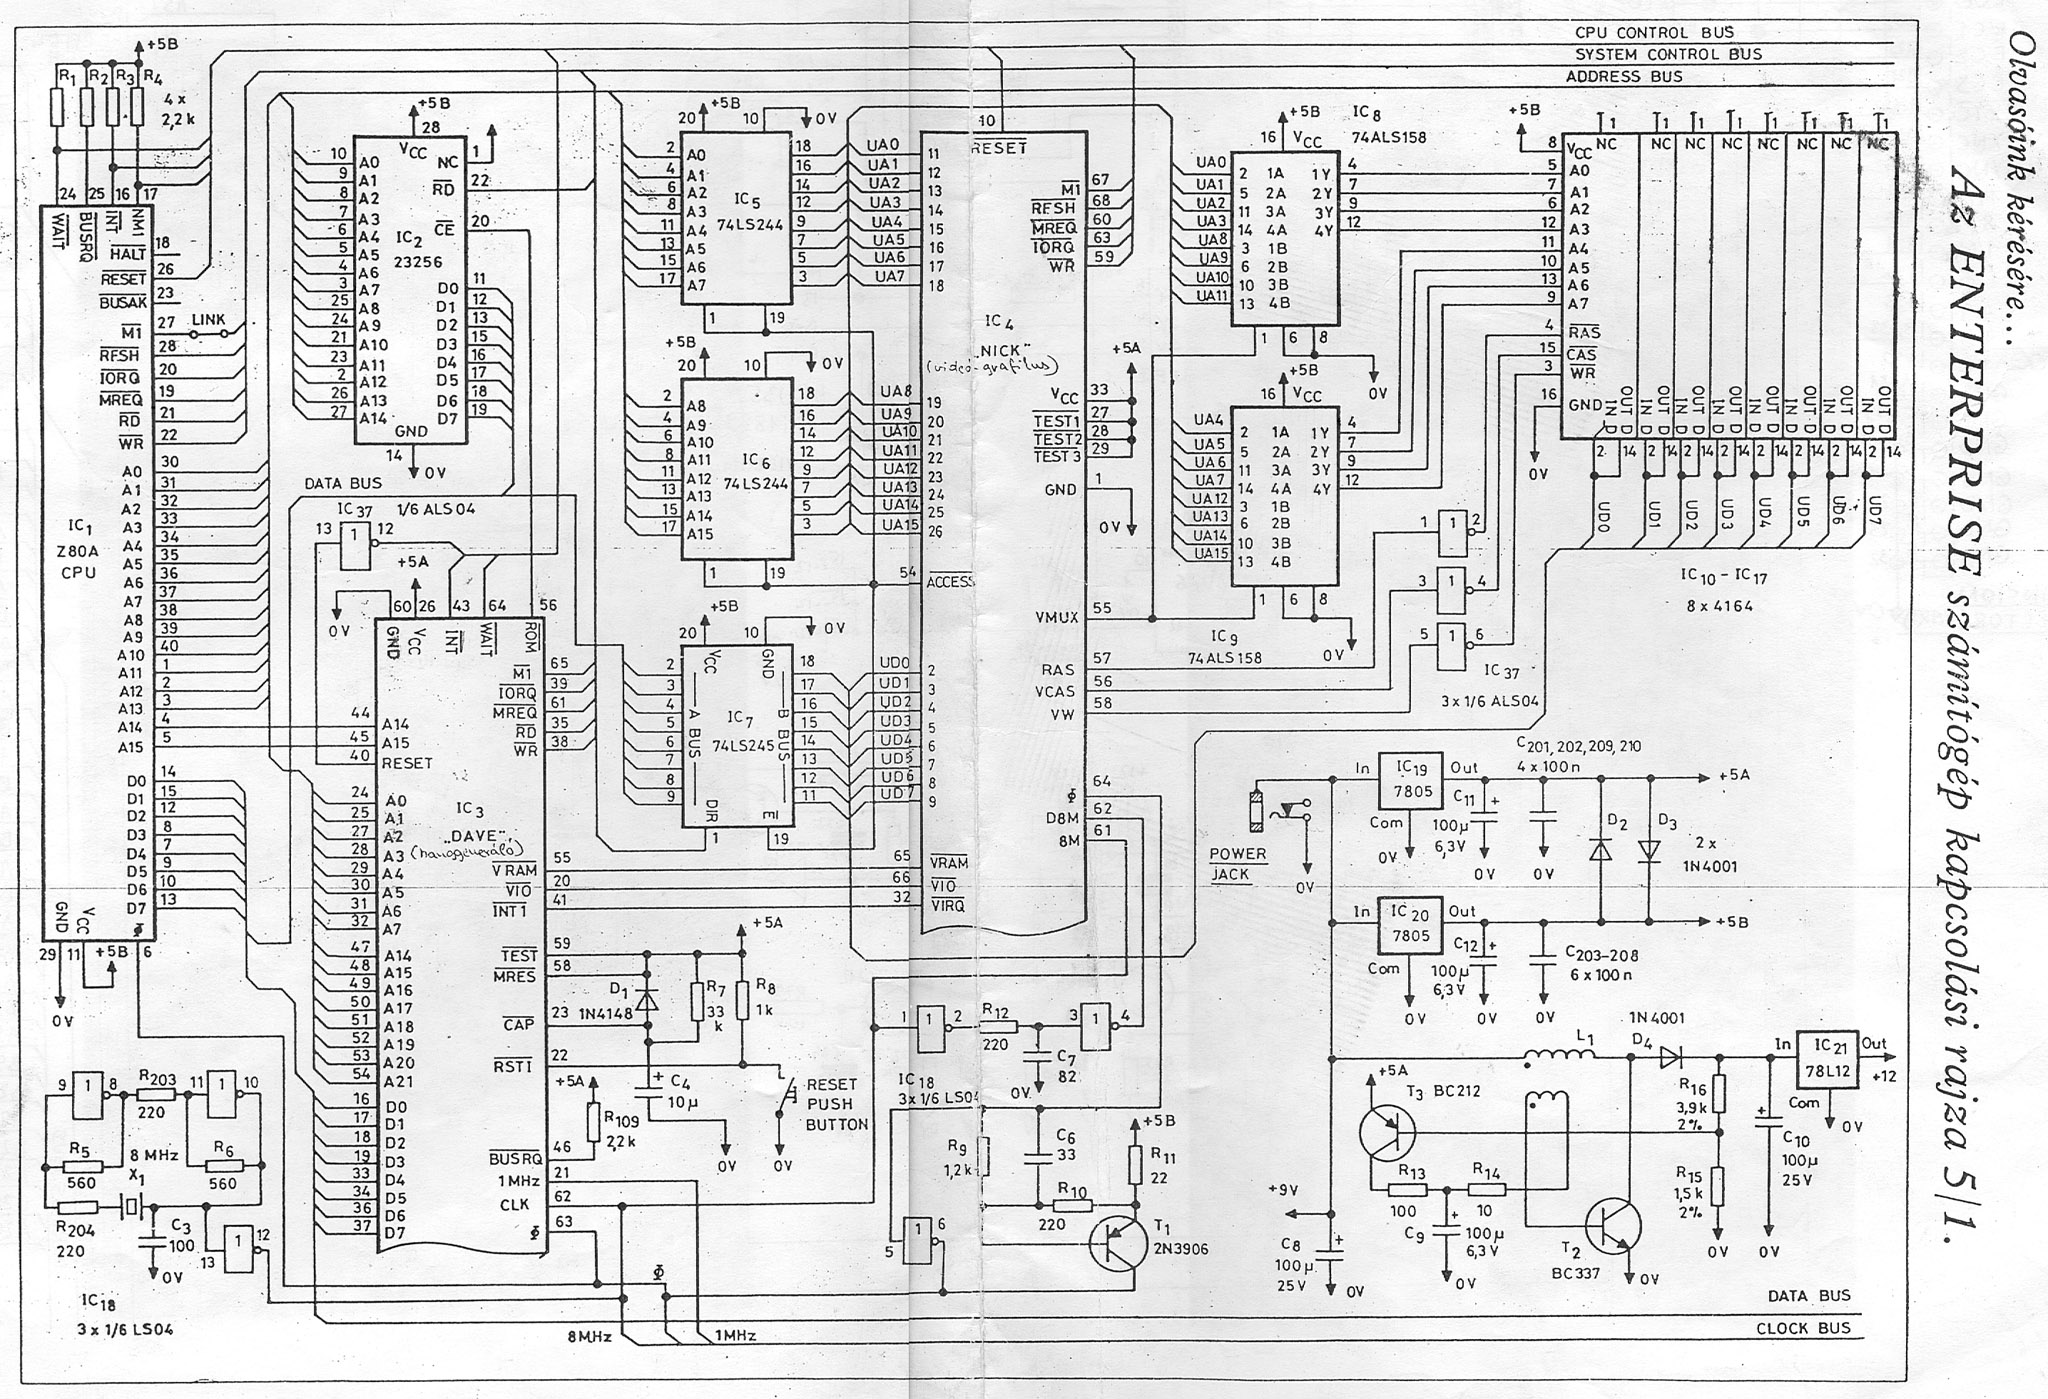 Schematic Drawings | Wiring Liry on functional flow block diagram, data flow diagram, information drawings, ladder logic, engineering drawings, stars in space drawings, circuit diagram, engineering drawing, technical drawings, cool drawings, technical drawing, p-47 3 view drawings, 3d drawings, one-line diagram, republic p-47 thunderbolt drawings, rj48x jack panel mount drawings, elevator pit drawings, function block diagram, orthographic drawings, cartoon drawings, sr-71 model drawings, tube map, be mine in graffitti drawings, landscape drawings, piping and instrumentation diagram, block diagram, electronic design automation, cross section, passing of the frontier drawings, isometric drawings, control flow diagram, switch drawings, cad drawings, straight-line diagram, blueprint drawings,